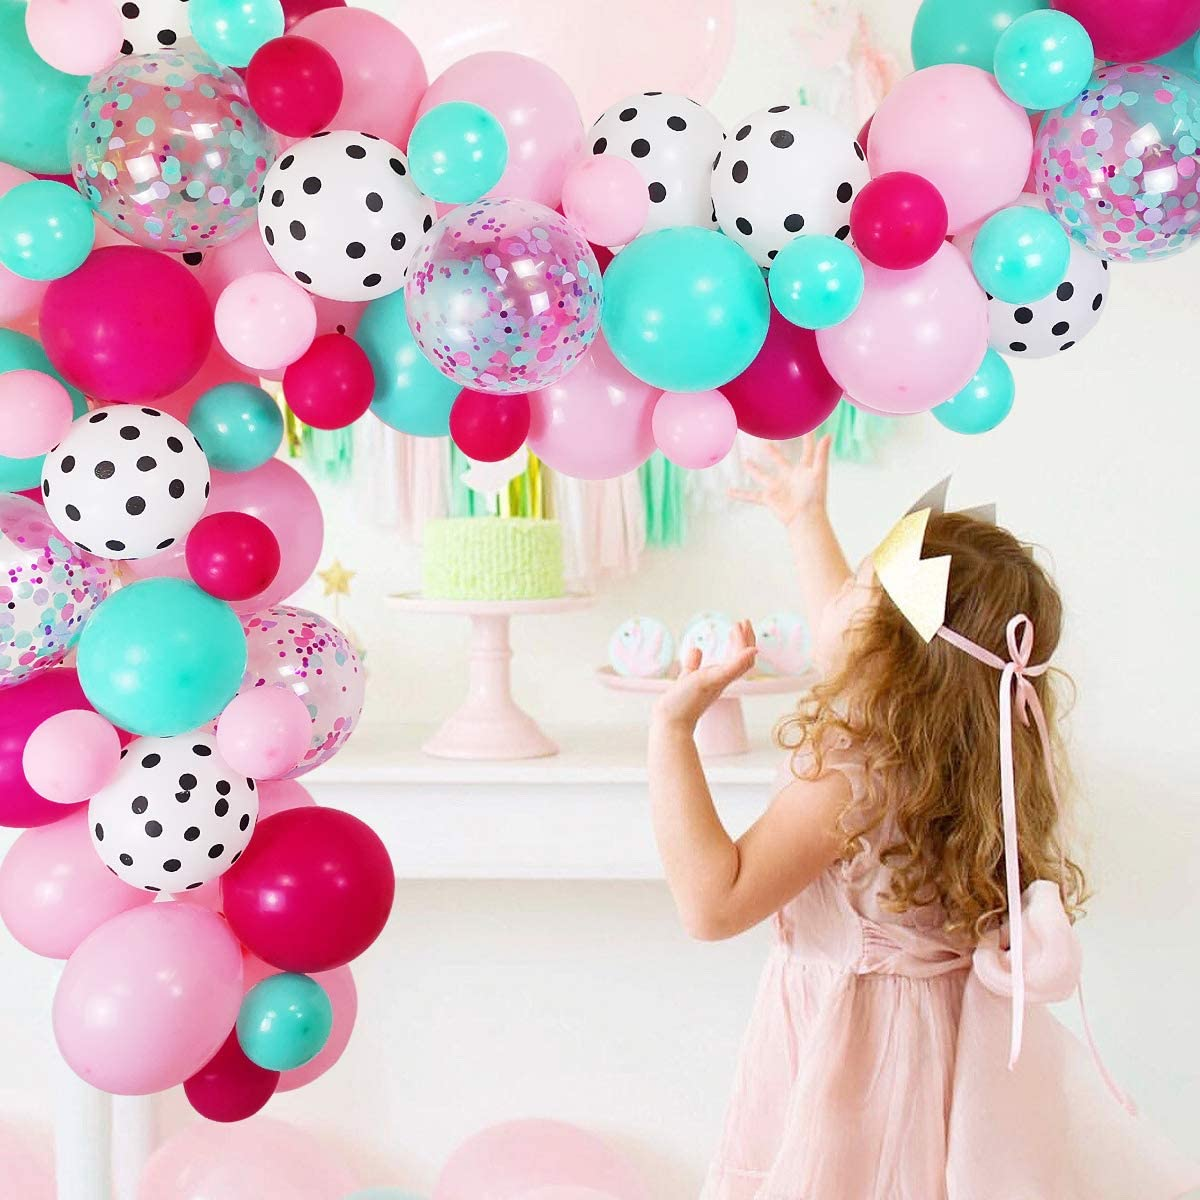 Lol Party Balloon Decoration Party Supplies for Girl Birthday Doll Latex Balloons Confetti Balloon for Baby Shower Kids Girls Boys Surprise Birthday Surprise Party Supplies